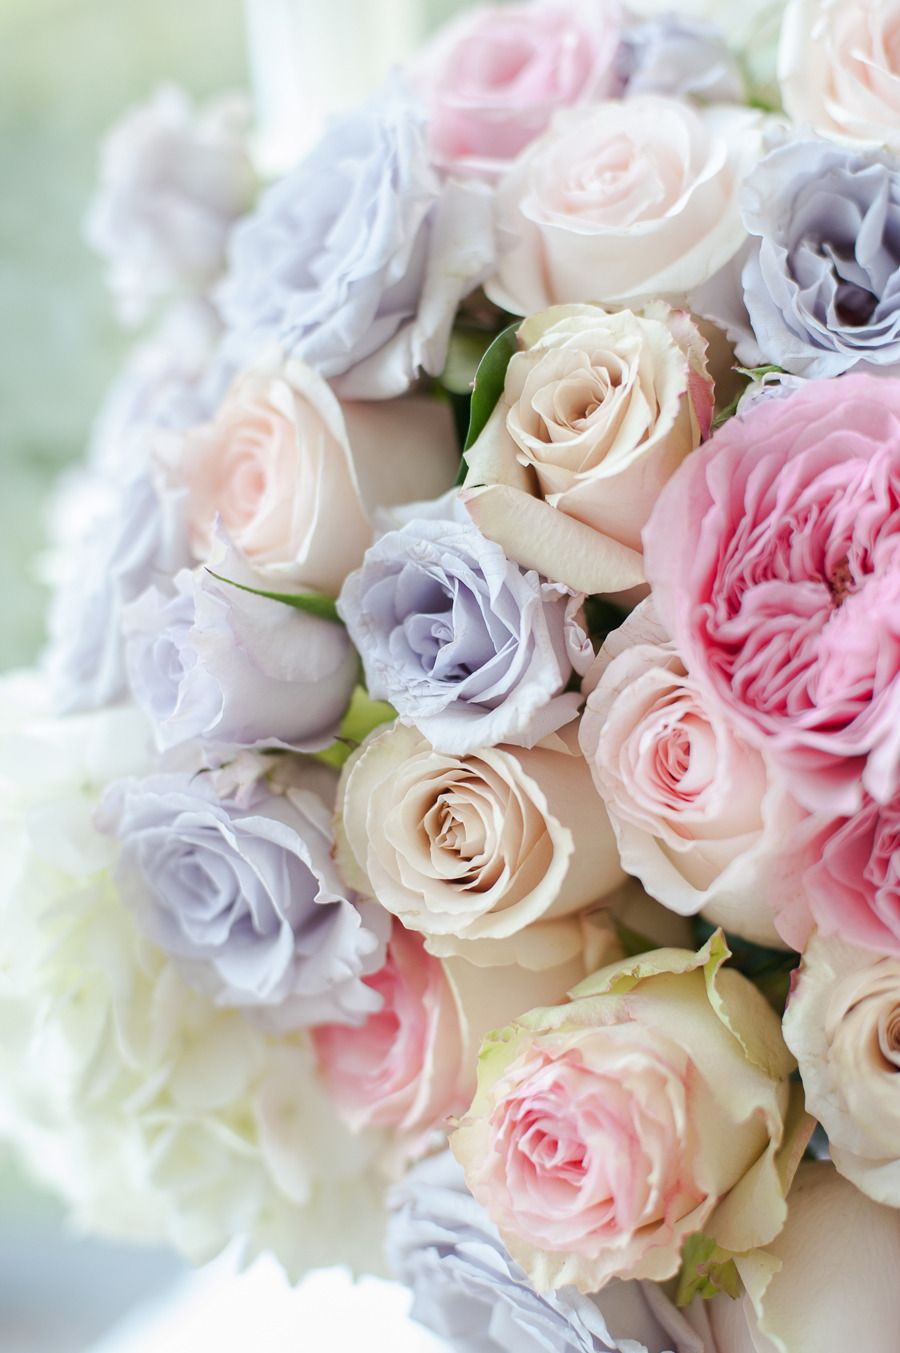 Marie antoinette inspiration shoot beautiful pastel and tes for Pastel colored flower arrangements